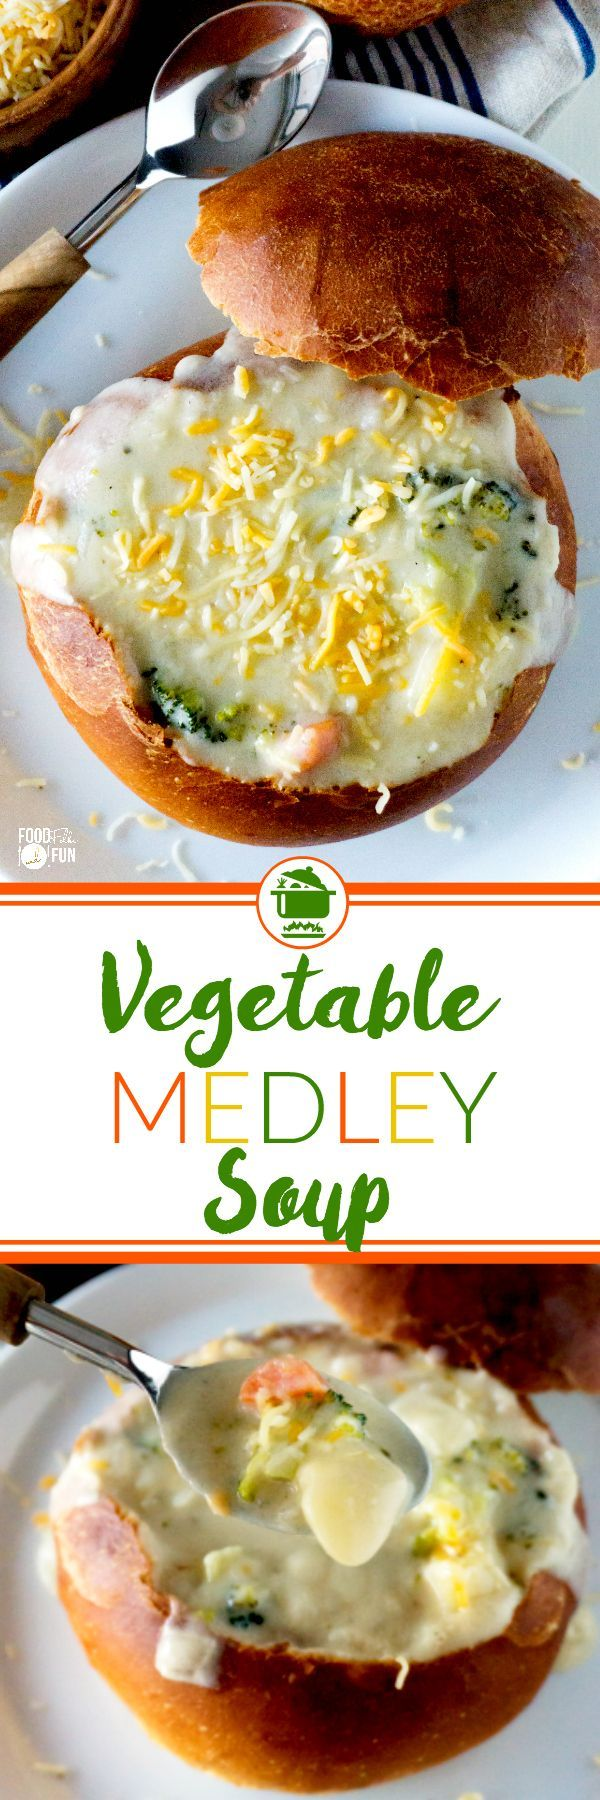 This Vegetable Medley Soup is a family favorite for over 15 years! It's easy to make, feeds a crowd, and simply comforting.